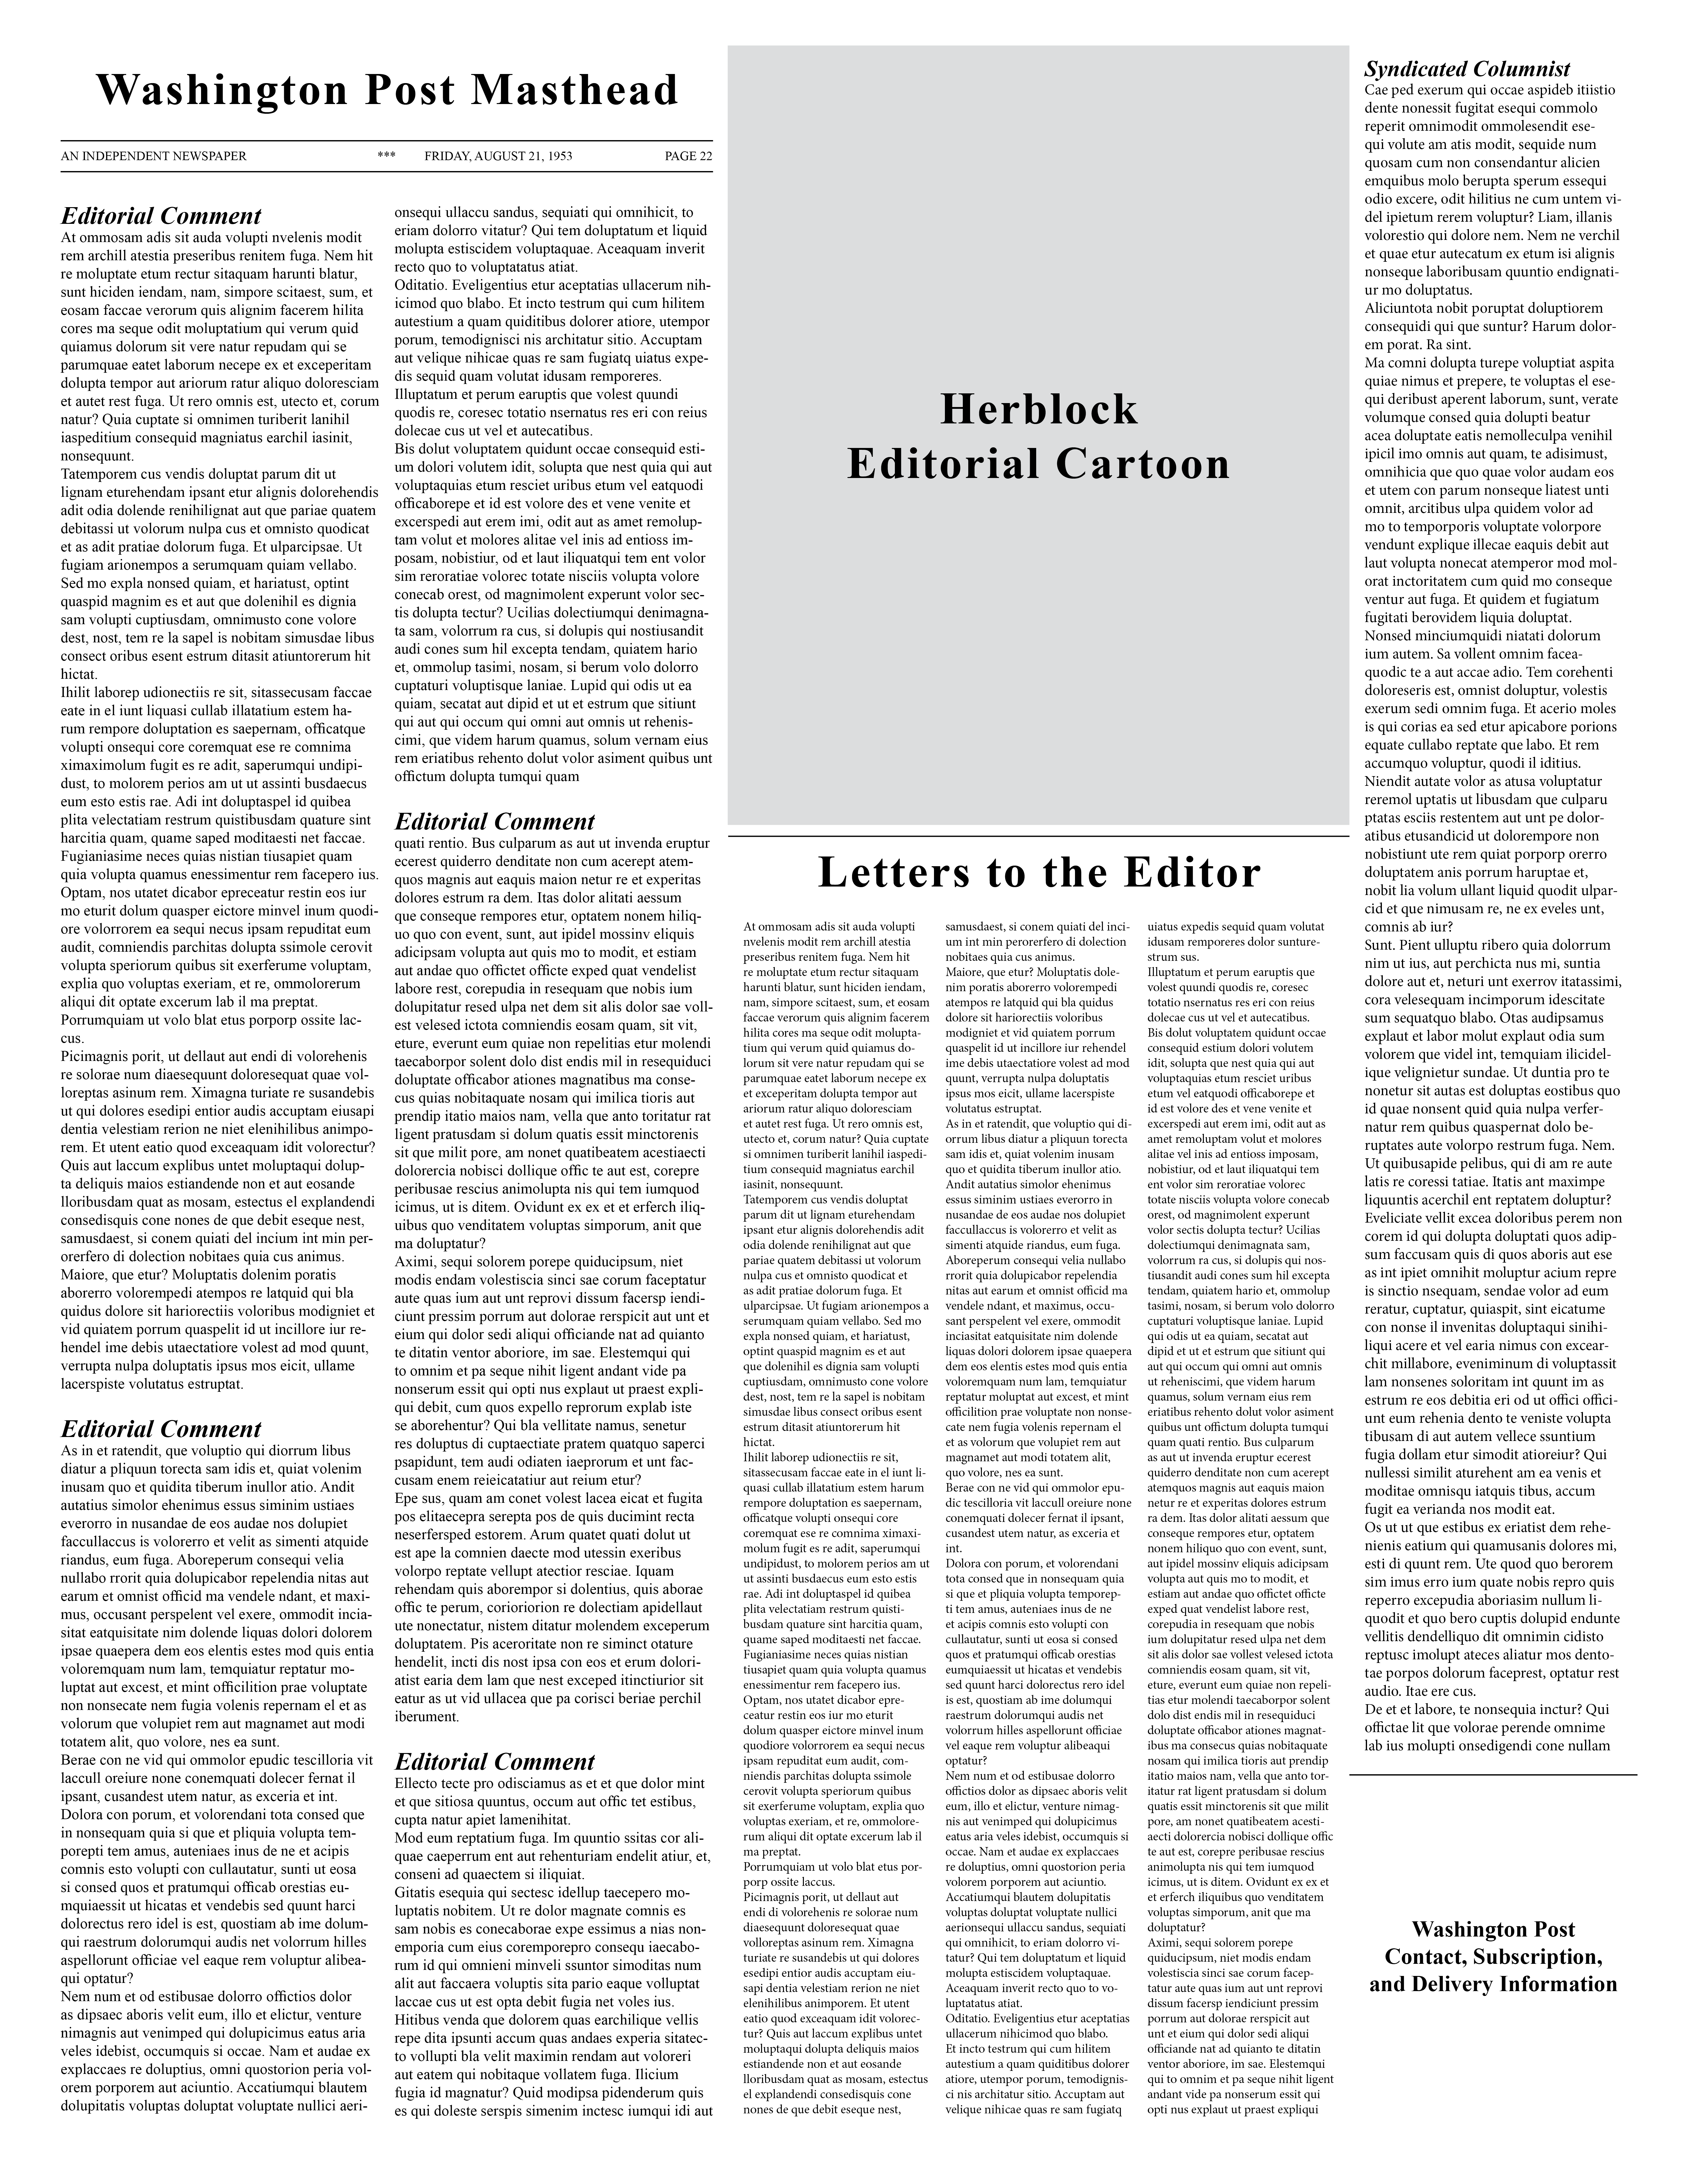 Mock-up of the Washington Post's editoral page layout based on the paper from the twenty-first of August nineteen hundred and fifty-three.